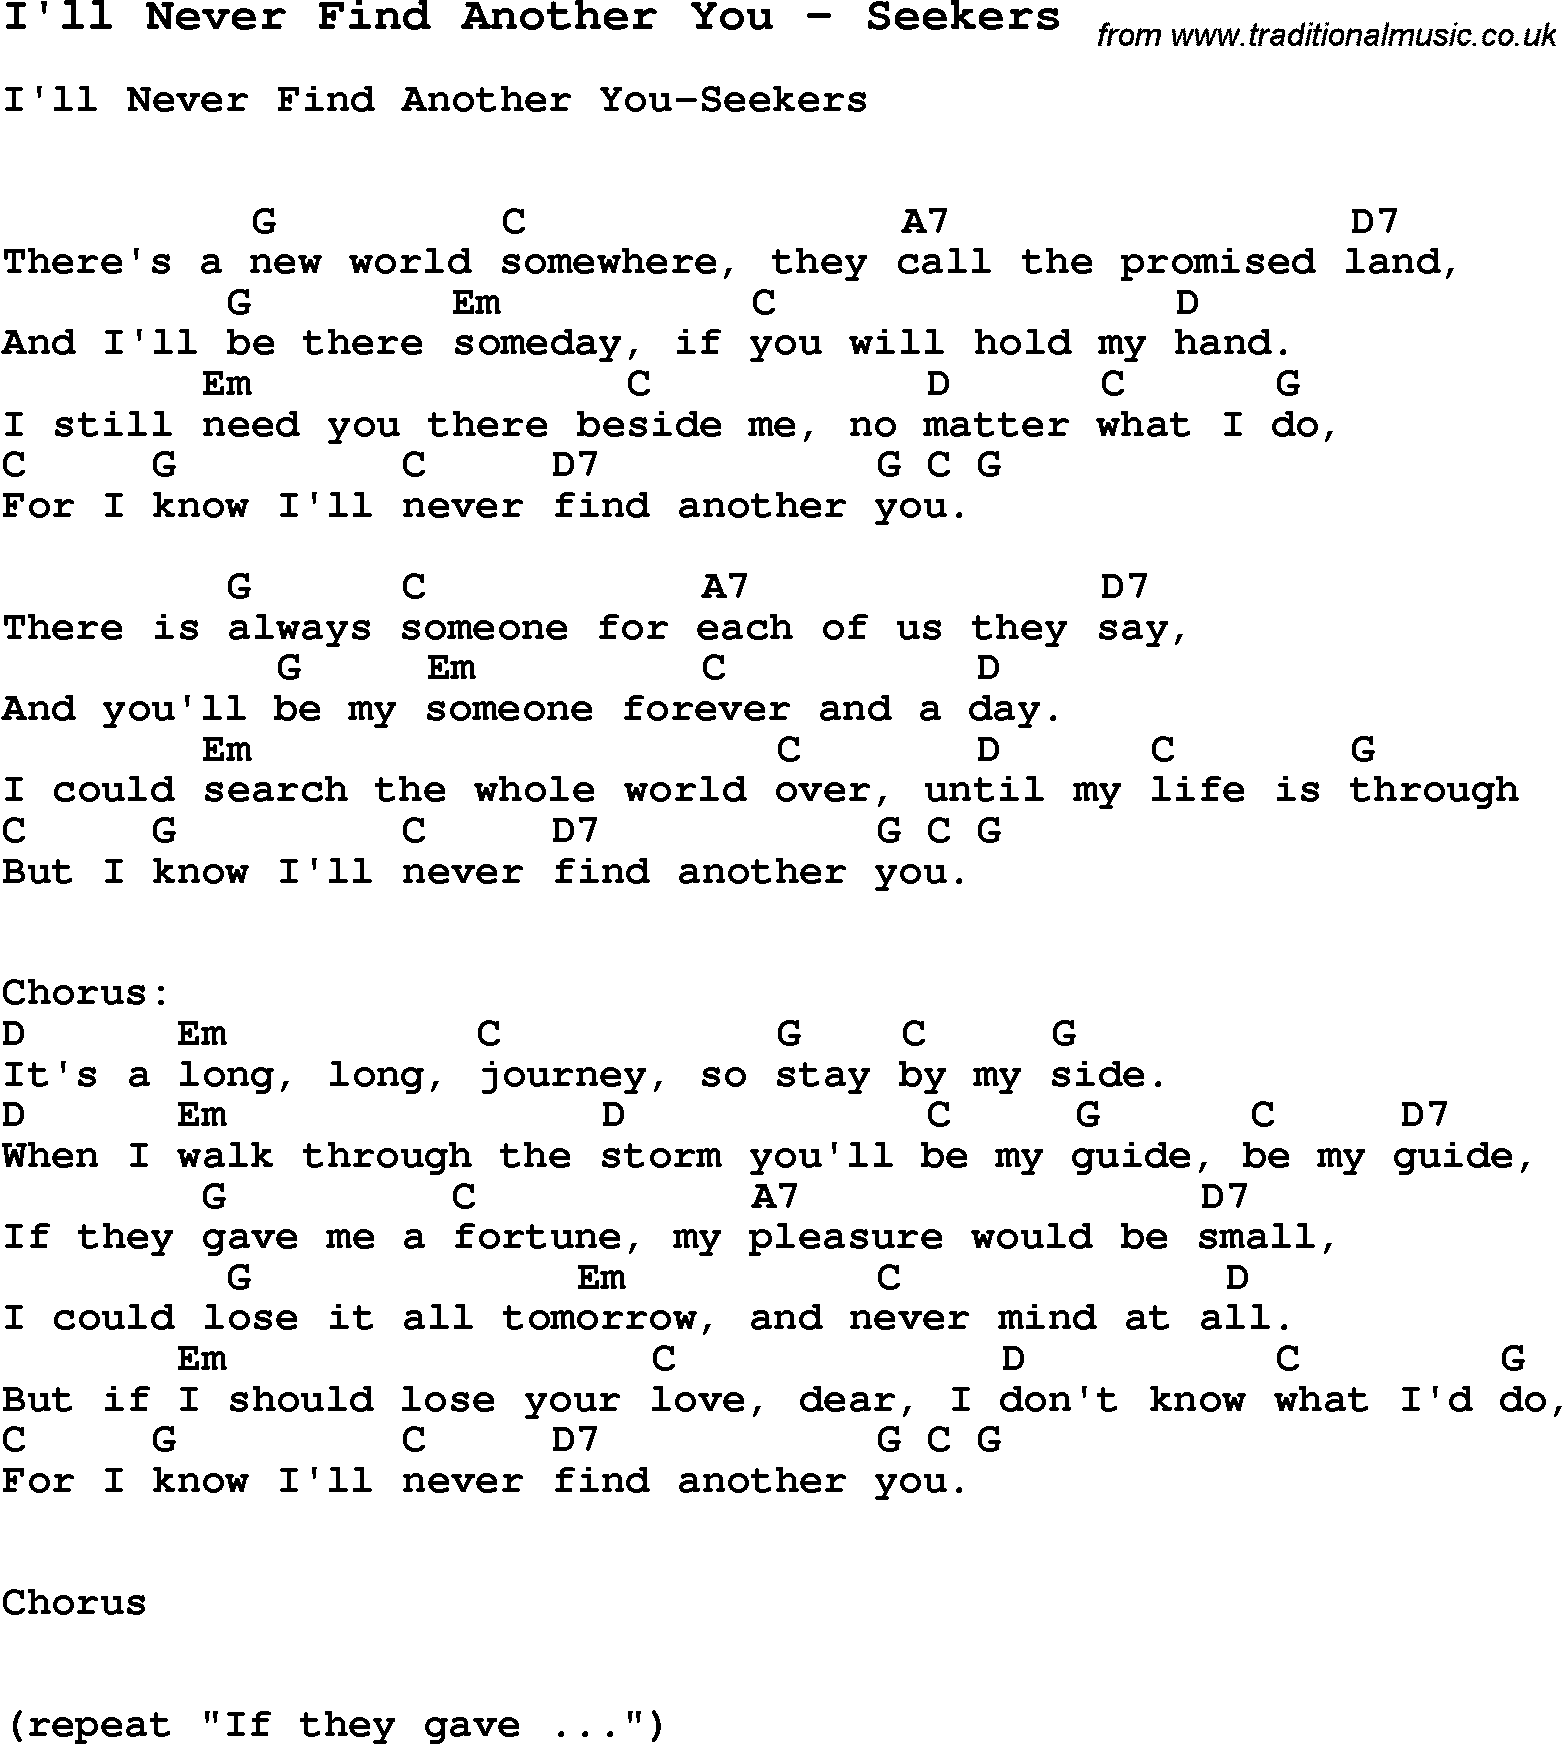 Song Ill Never Find Another You By Seekers Song Lyric For Vocal